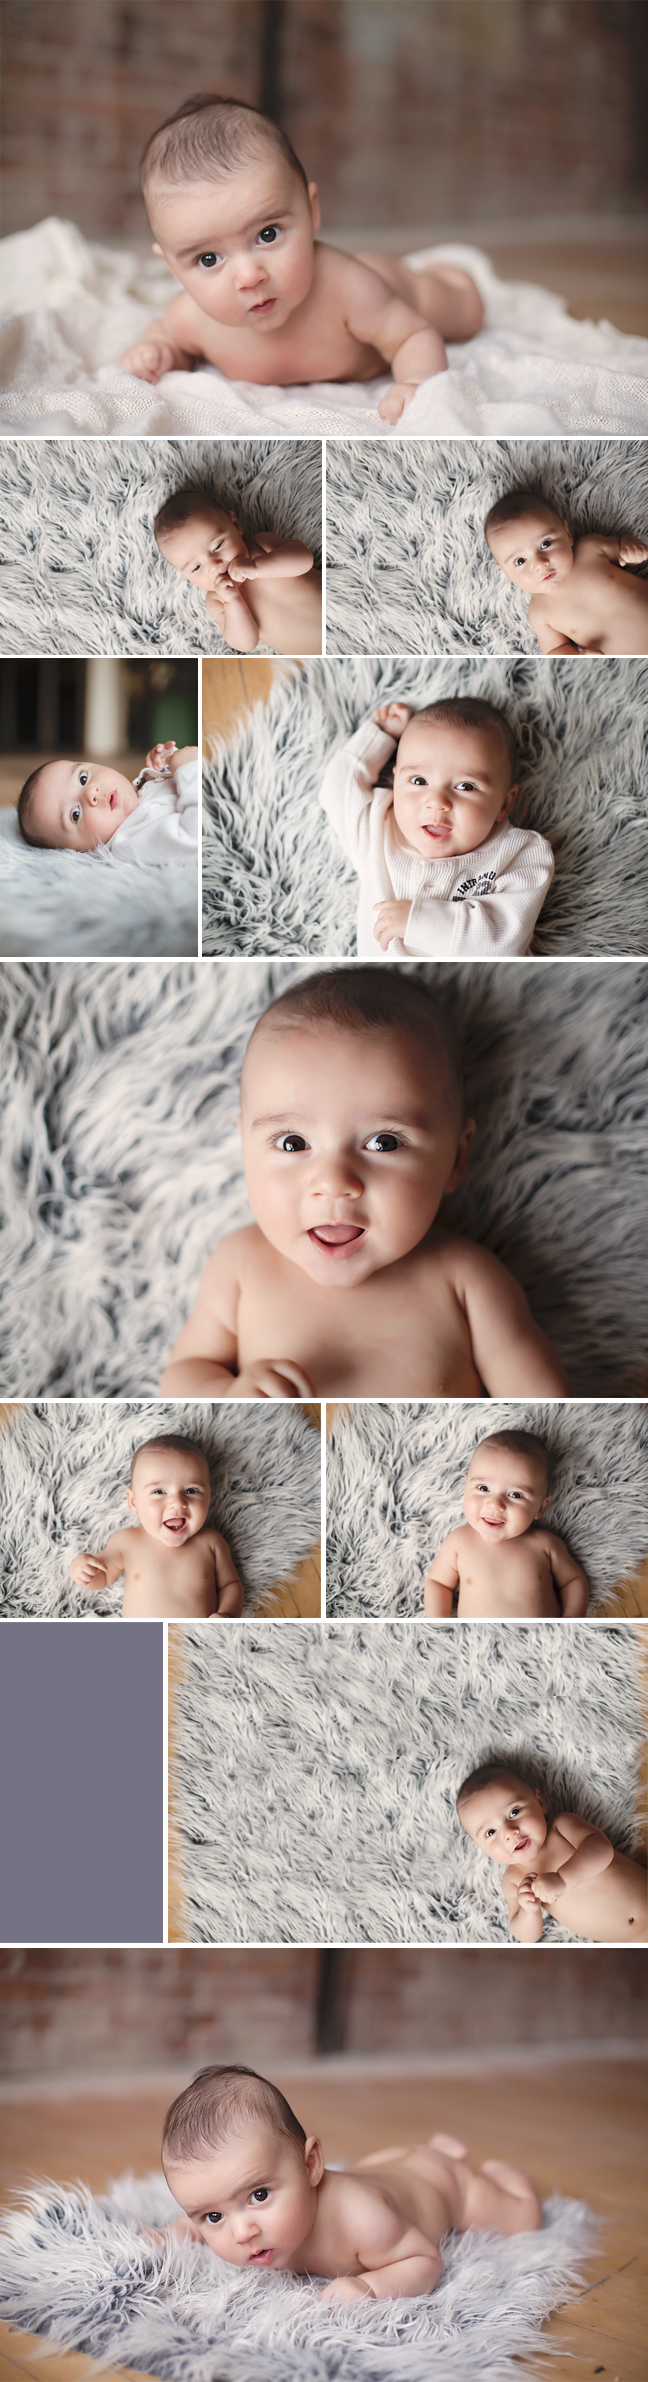 indoor urban 3 month old baby boy session photography tips and